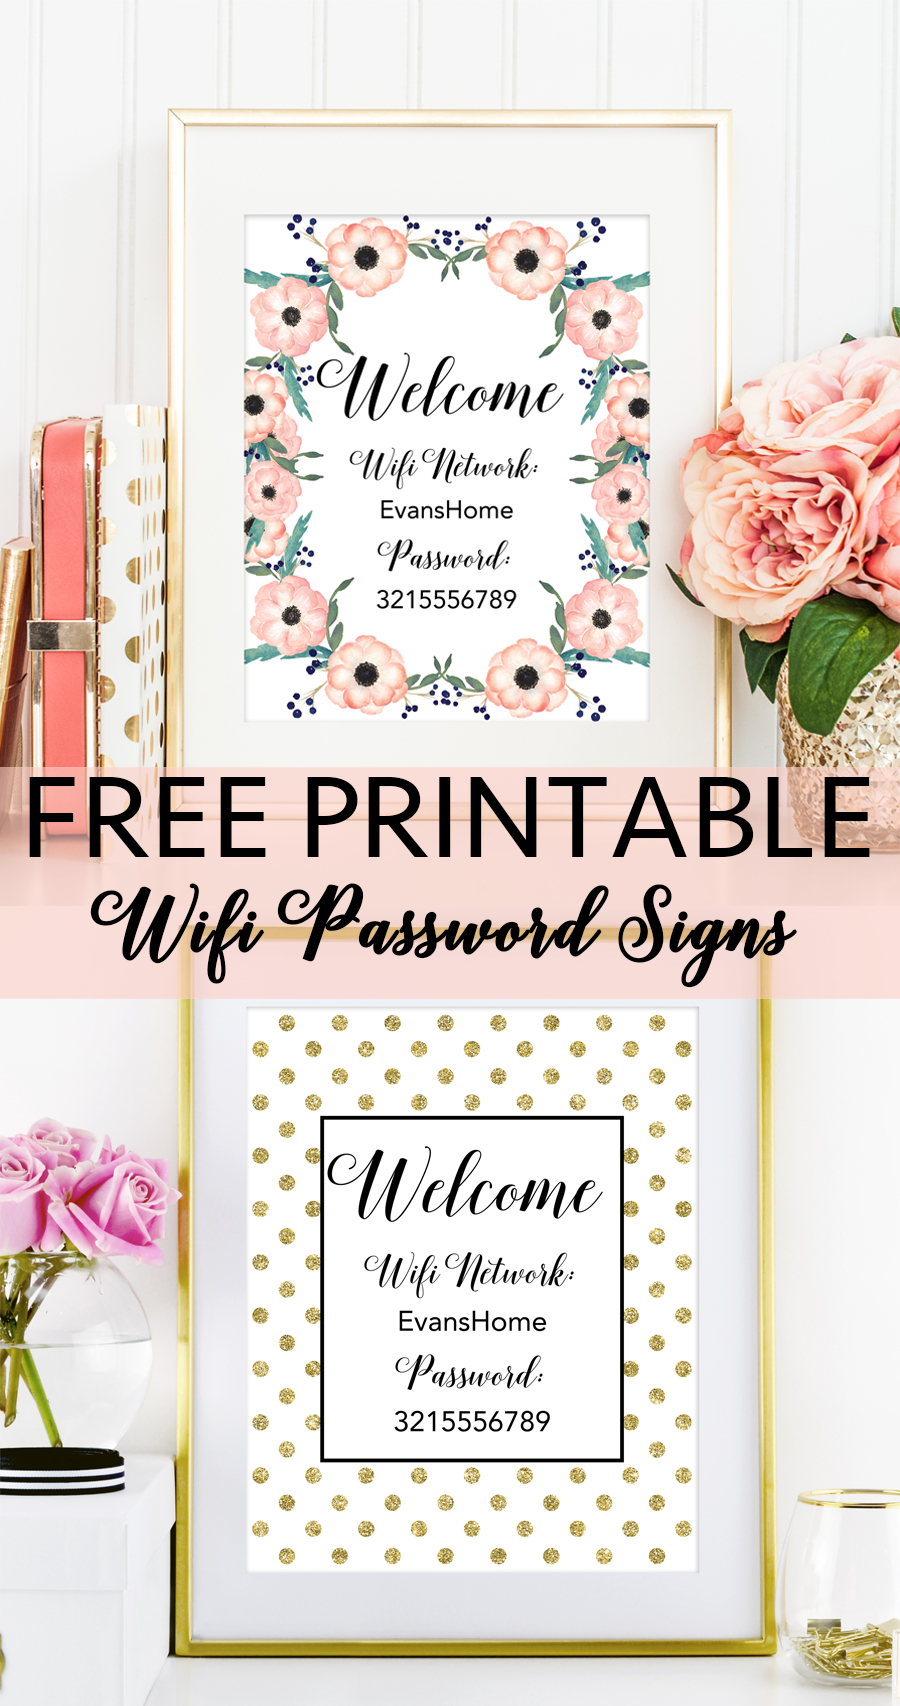 Free Printable Wifi Password Signs | Decorating Ideas - Home Decor - Free Printable Wifi Password Template